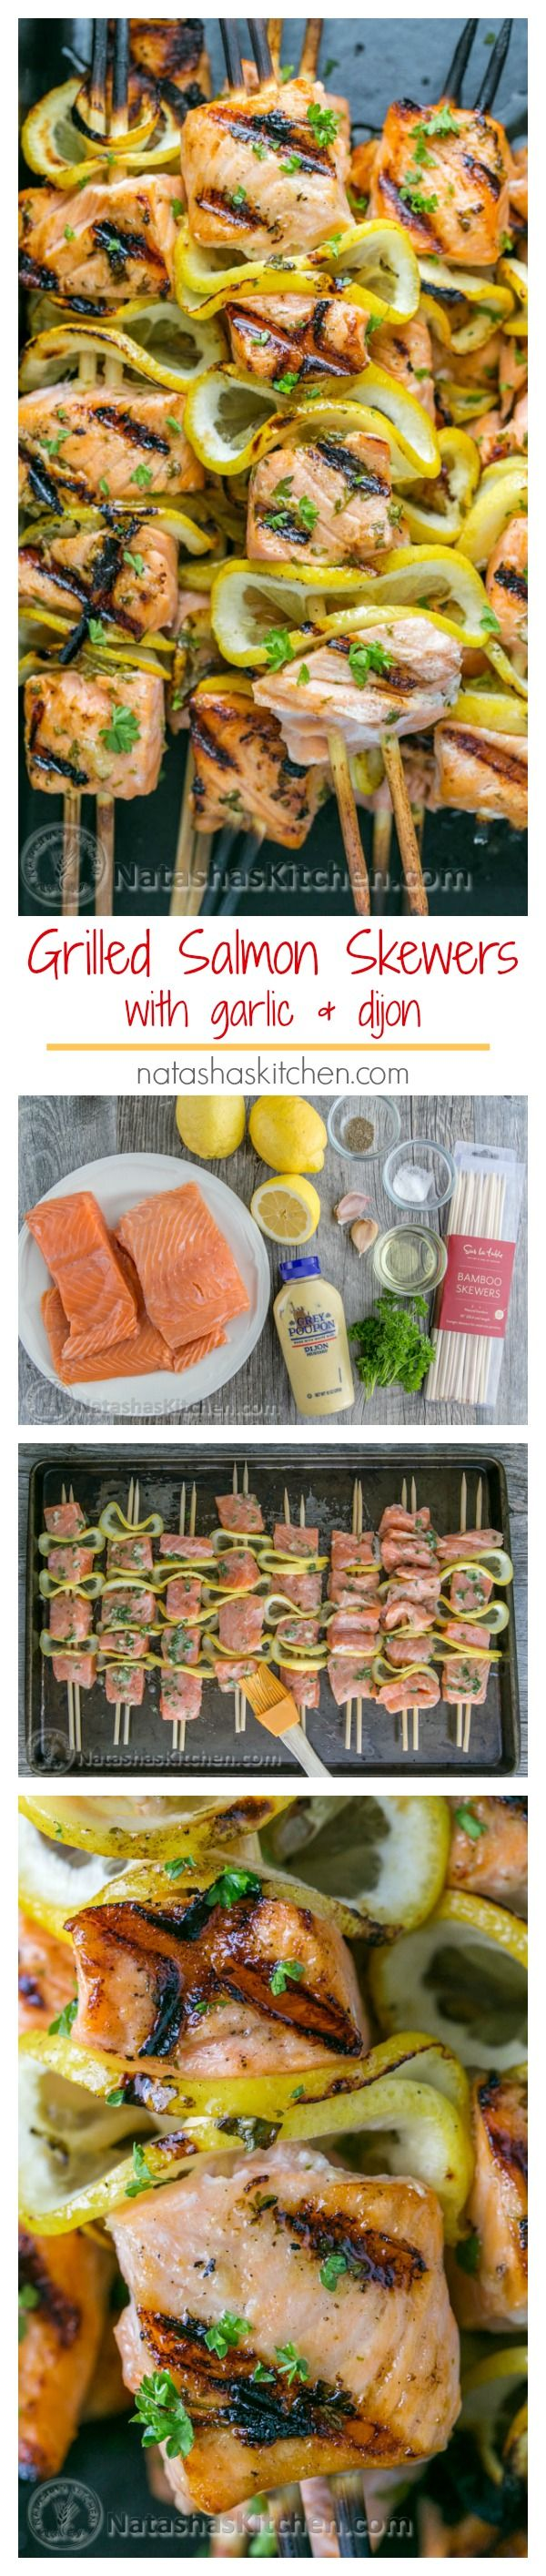 Easy grilled salmon skewers with garlic & dijon. Juicy with incredible flavor & takes less than 30 minutes ~ KEEPER!